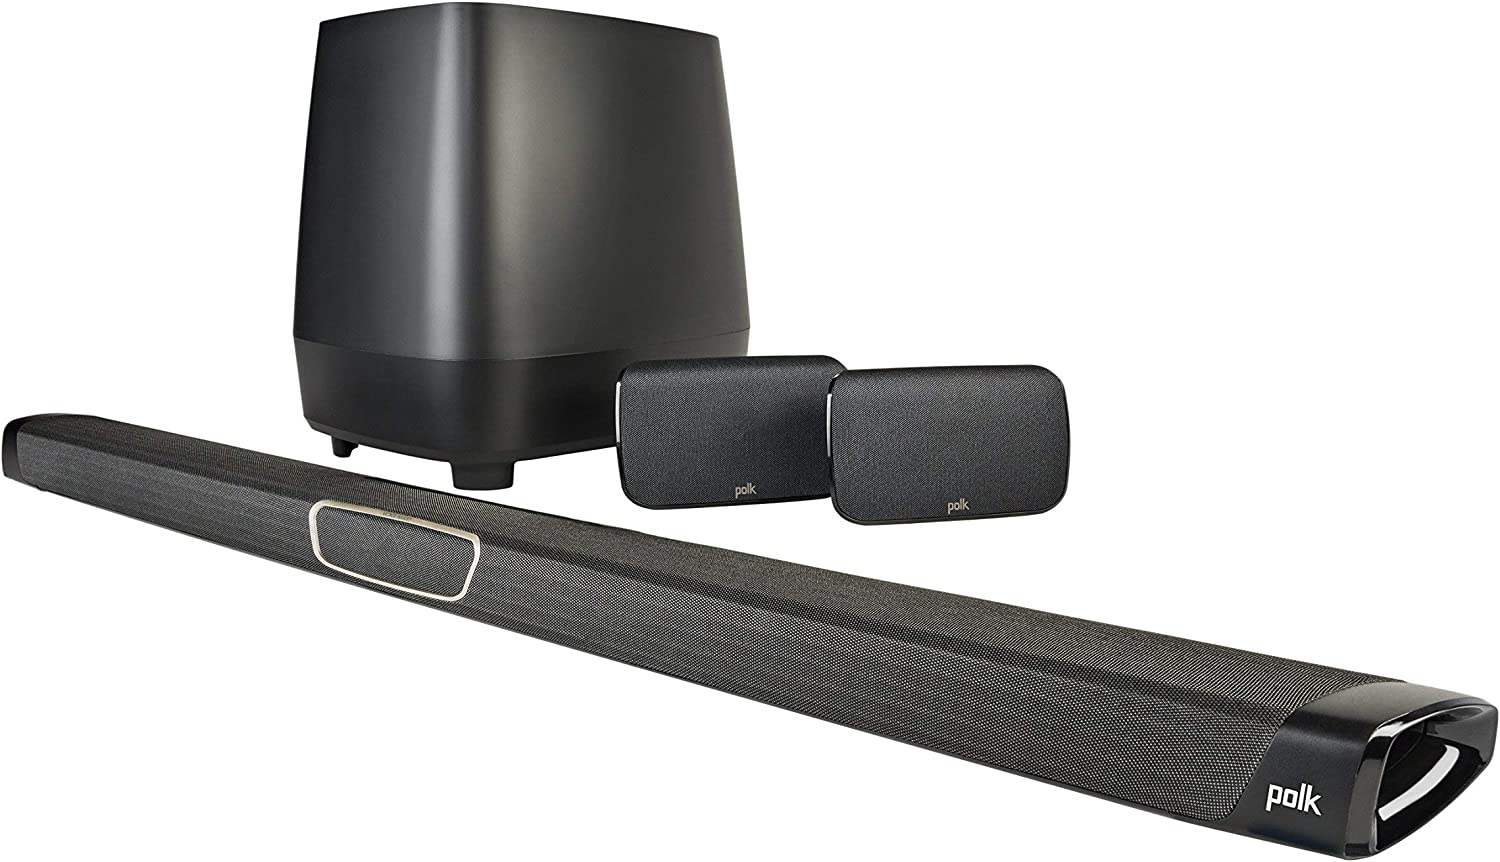 Polk Audio MagniFi Max SR Home Theater Surround Sound Bar | Works with 4K & HD TVs | HDMI, Optical Cables, Wireless Subwoofer & Two Speakers Included (Renewed)